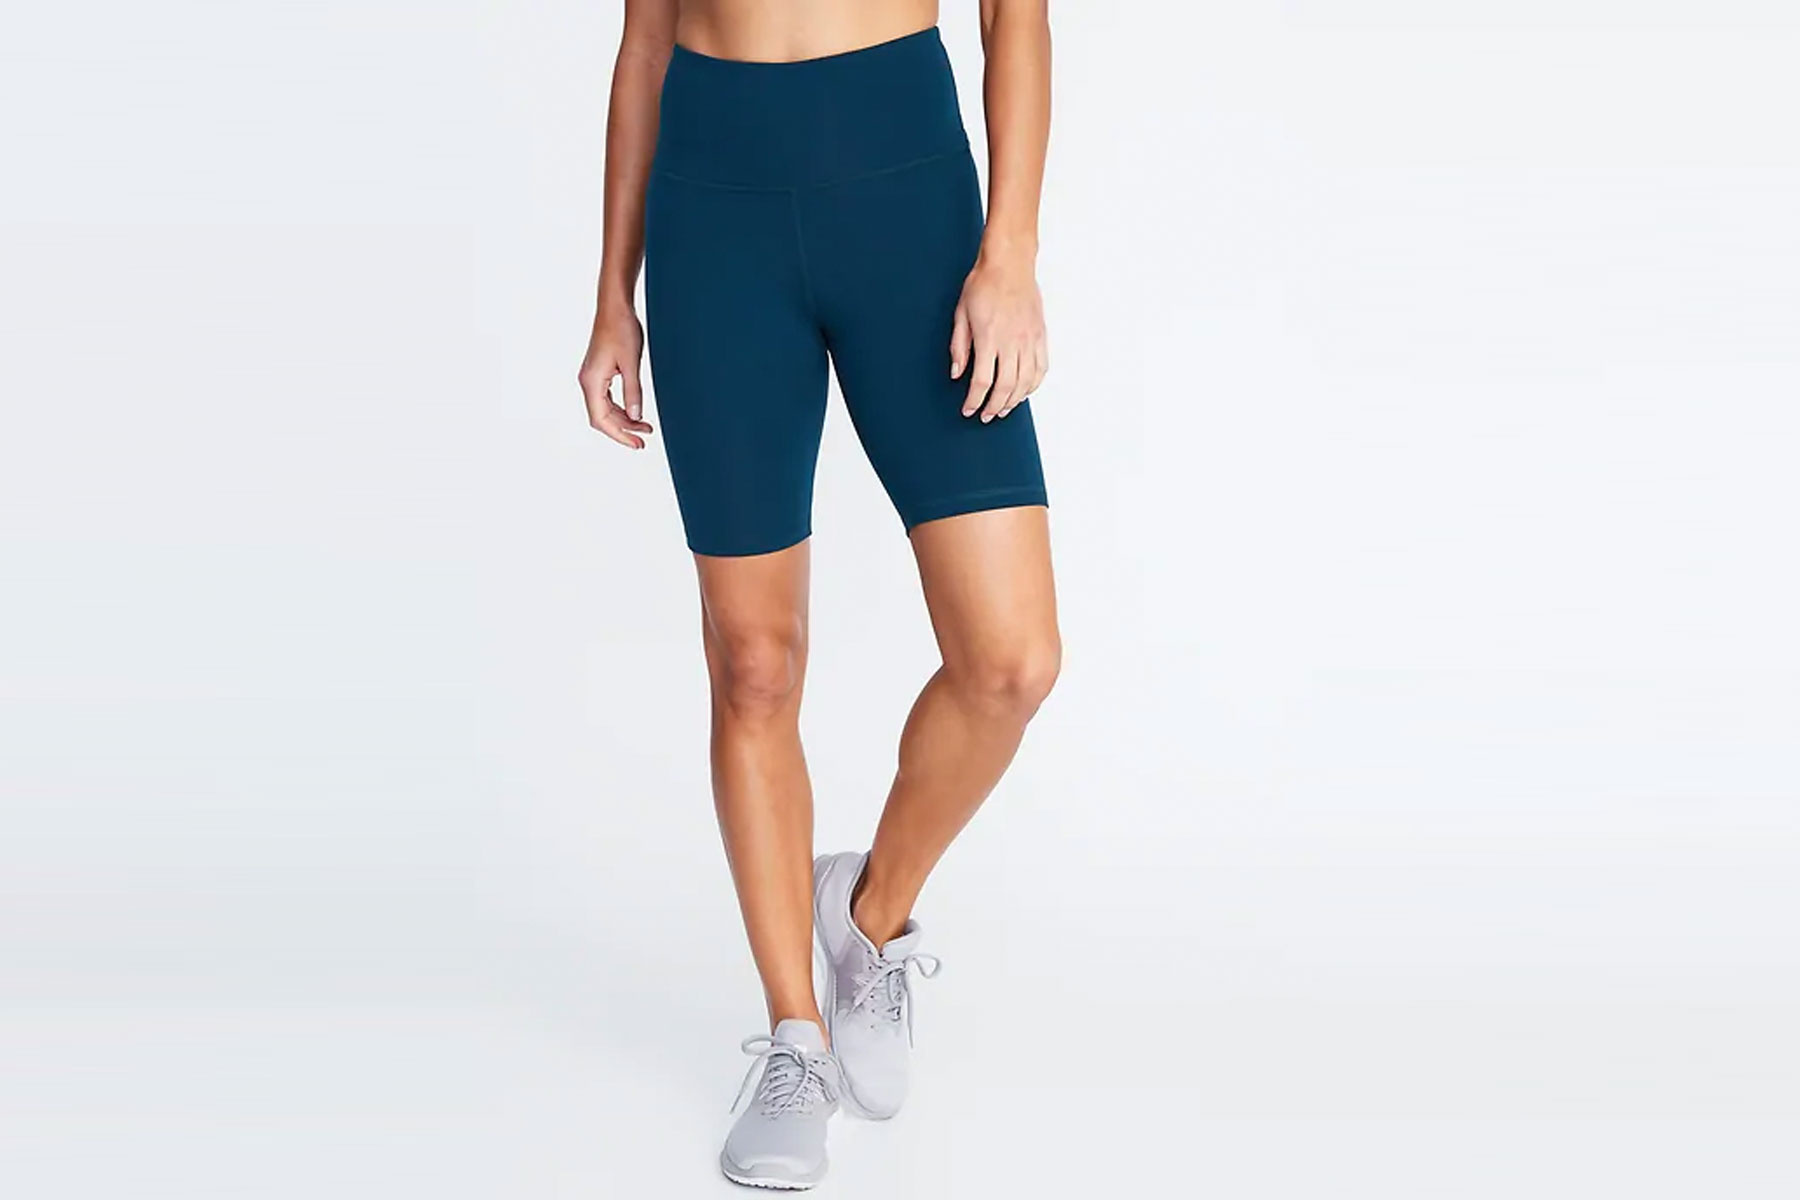 Old Navy High-Waisted Elevate Compression Bermuda Shorts